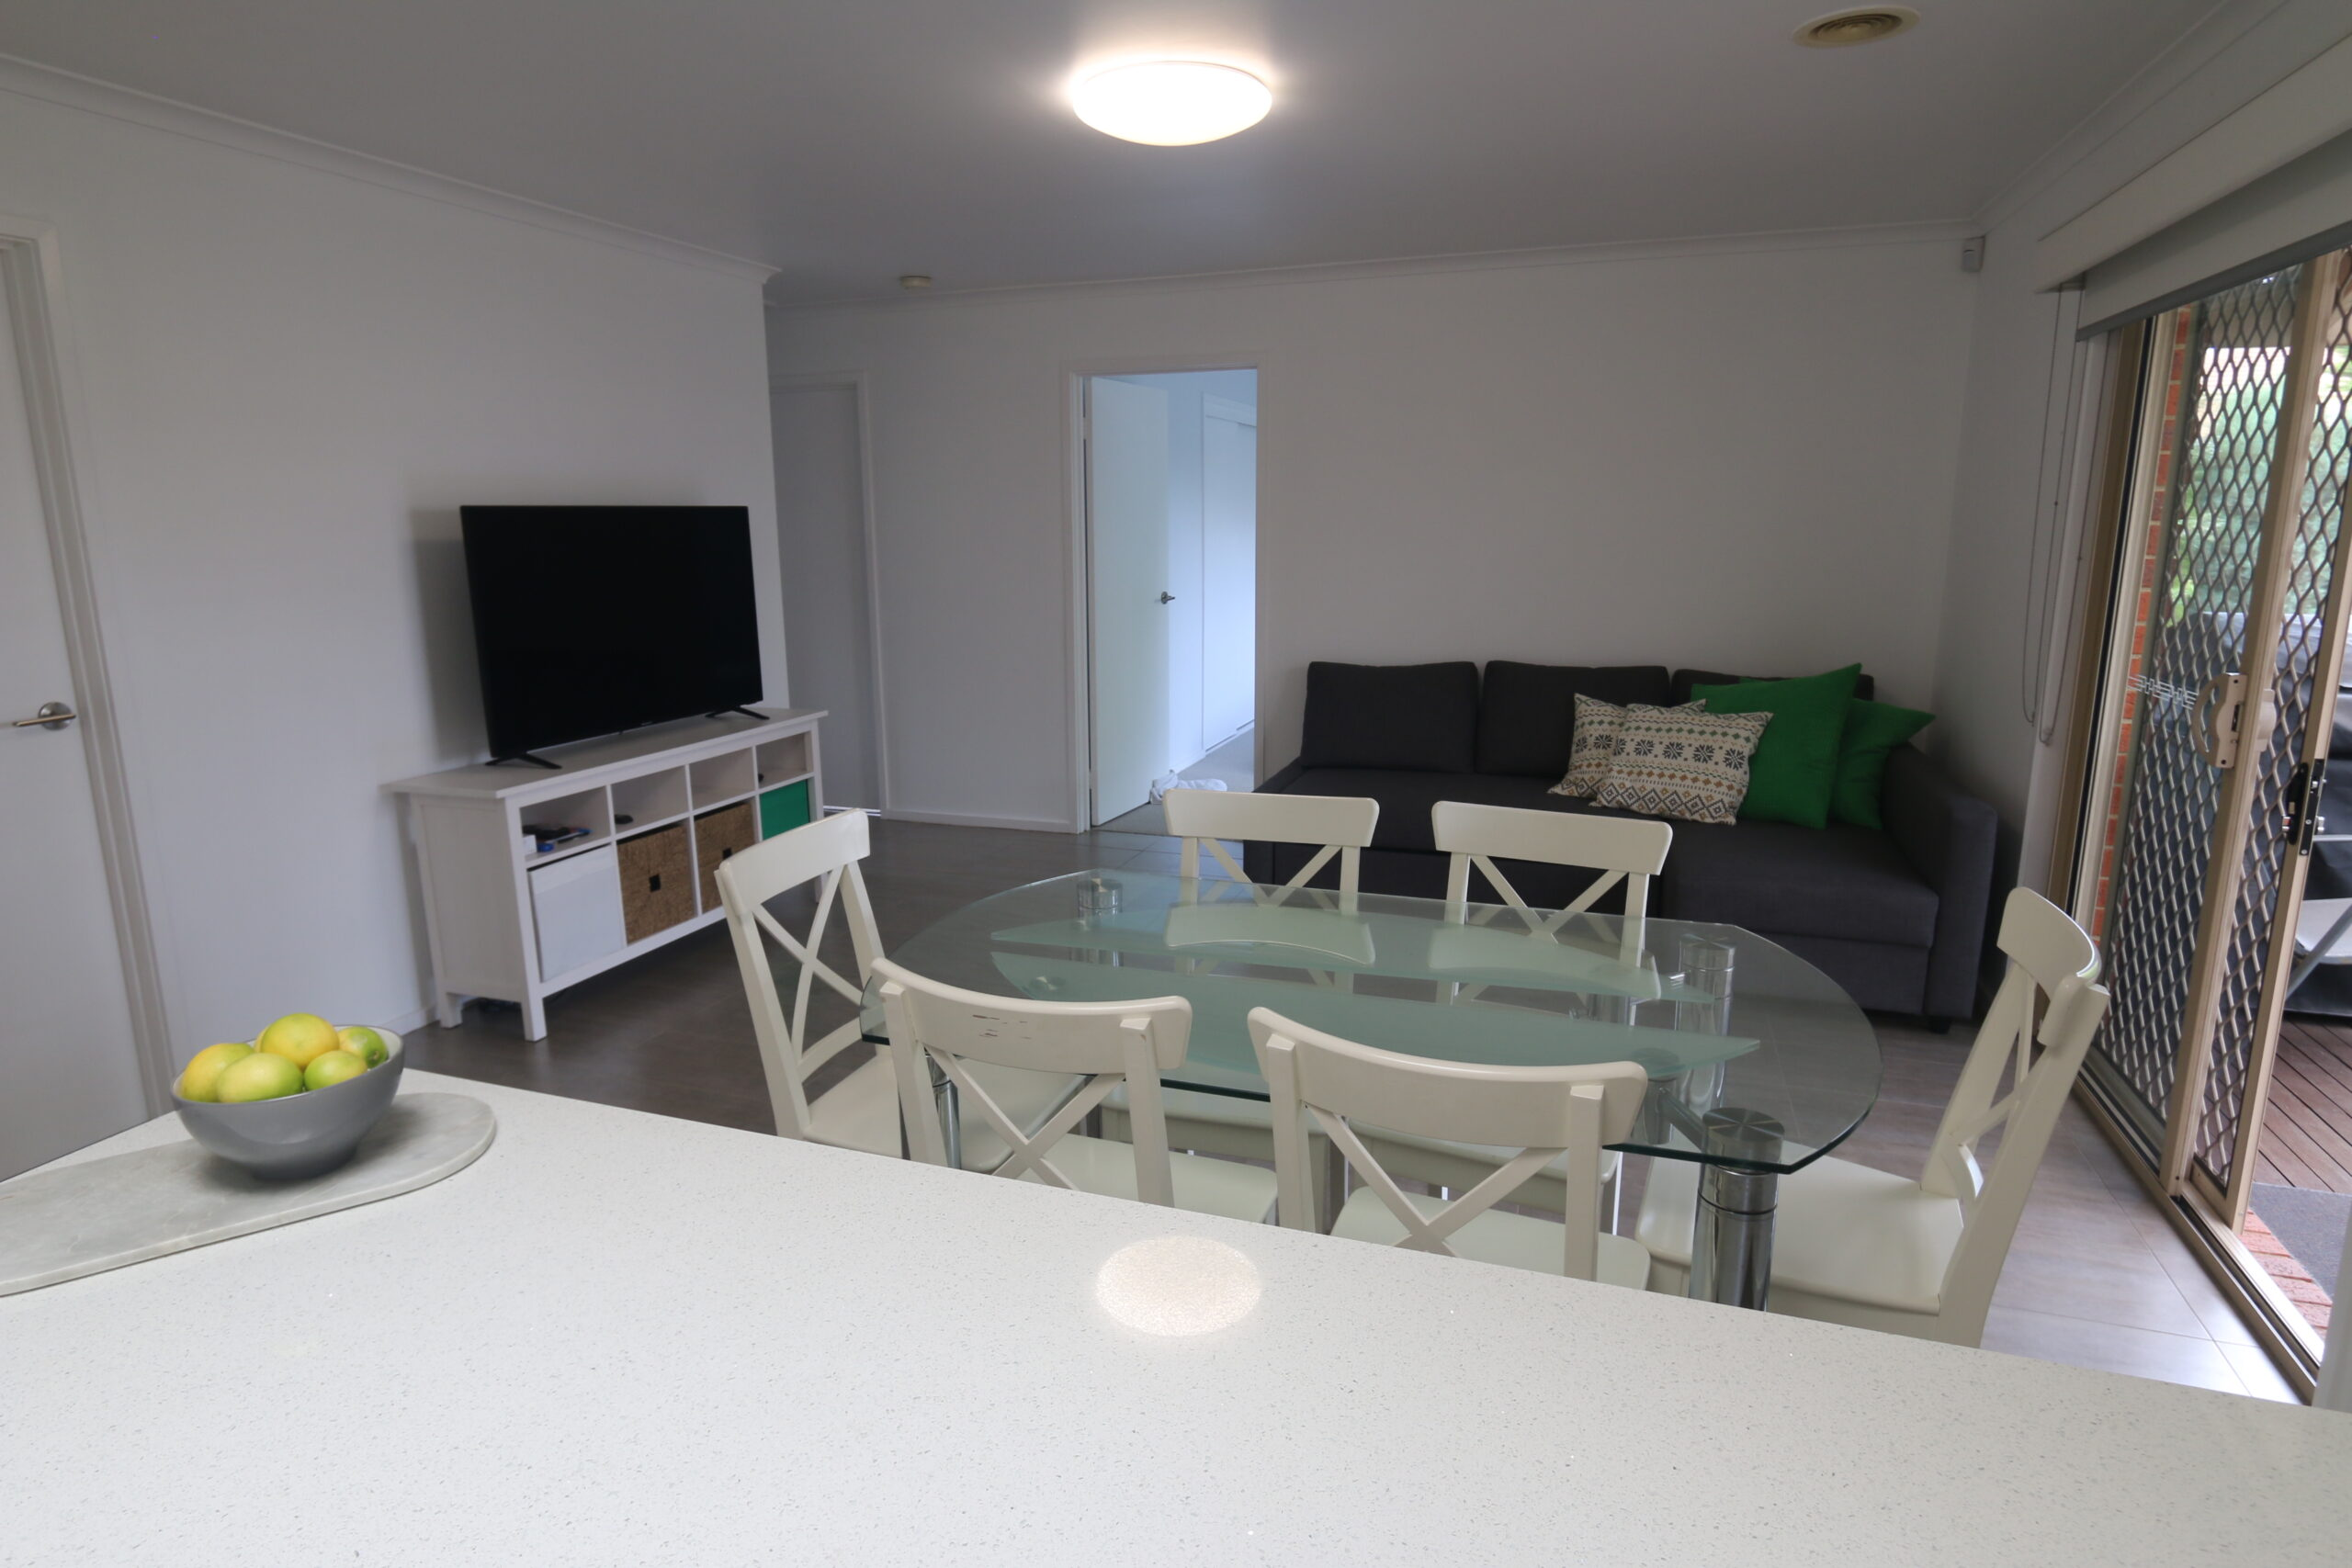 meals and living zone. Safety Beach holiday rental.